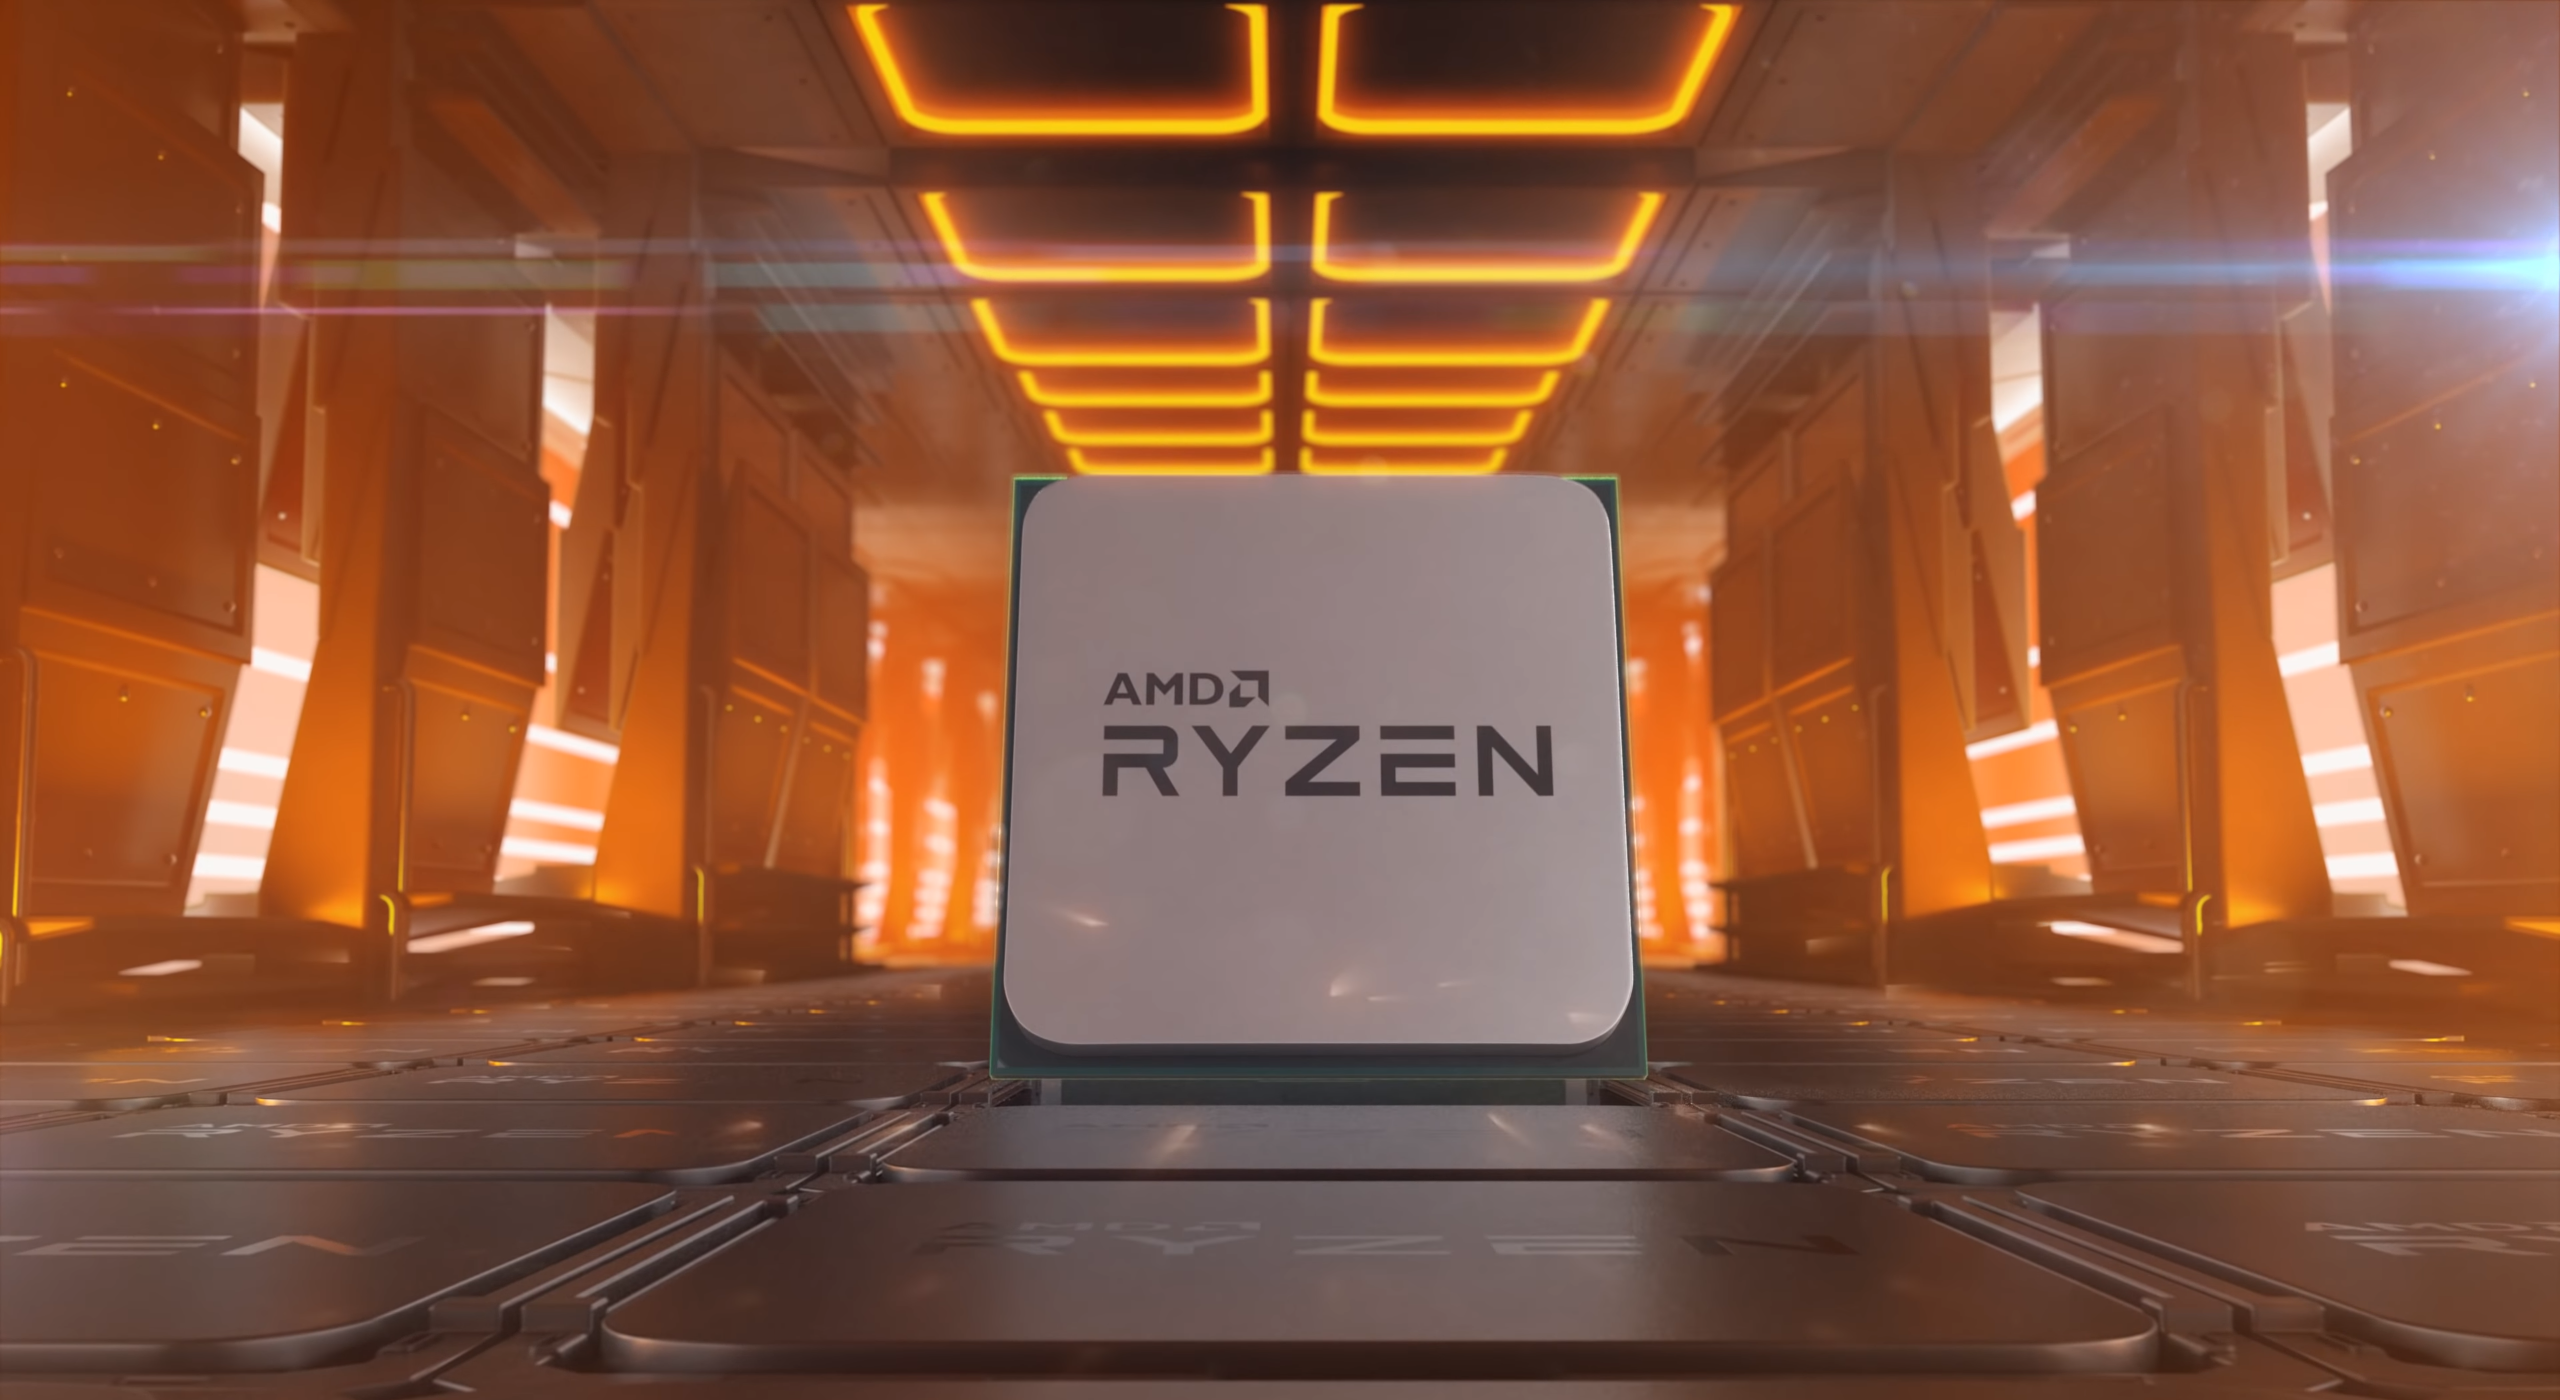 Amd Ryzen 7 3800x Benchmarks Leaked Crushes Intel S I9 9900k